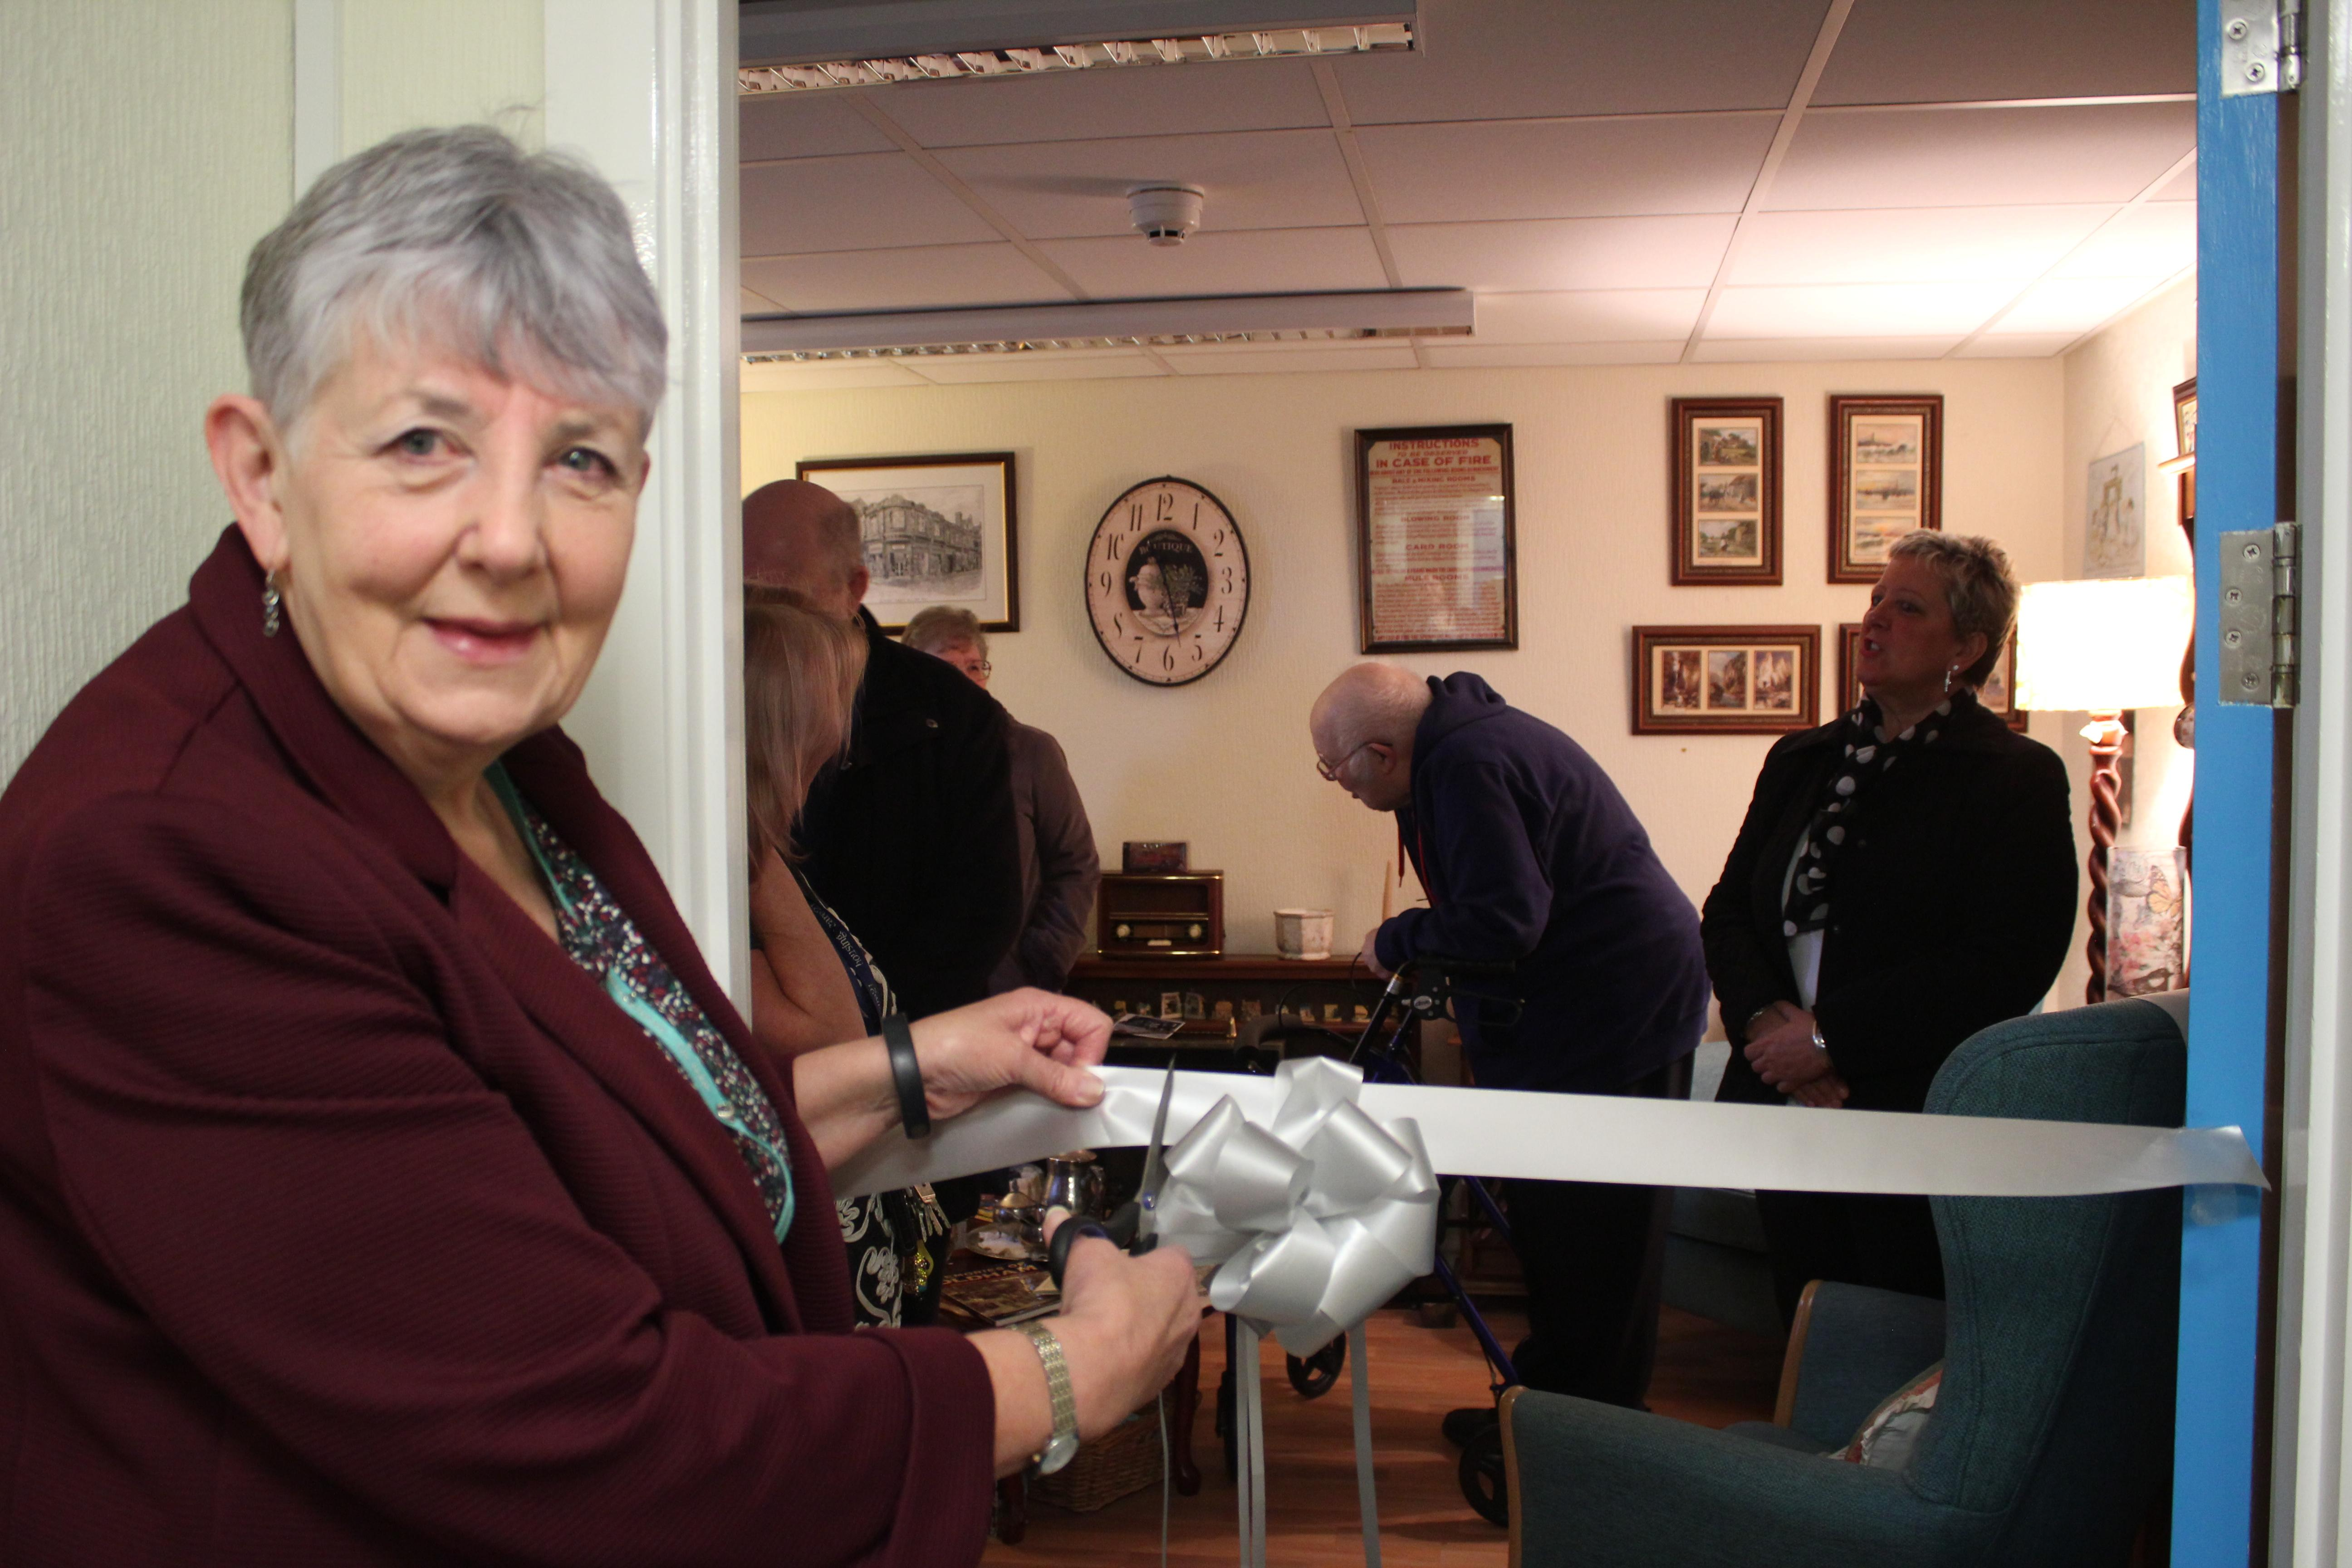 People living with dementia in Oldham can now return to yesteryear in a nostalgic 1950s-inspired room which helps trigger old and new memories.